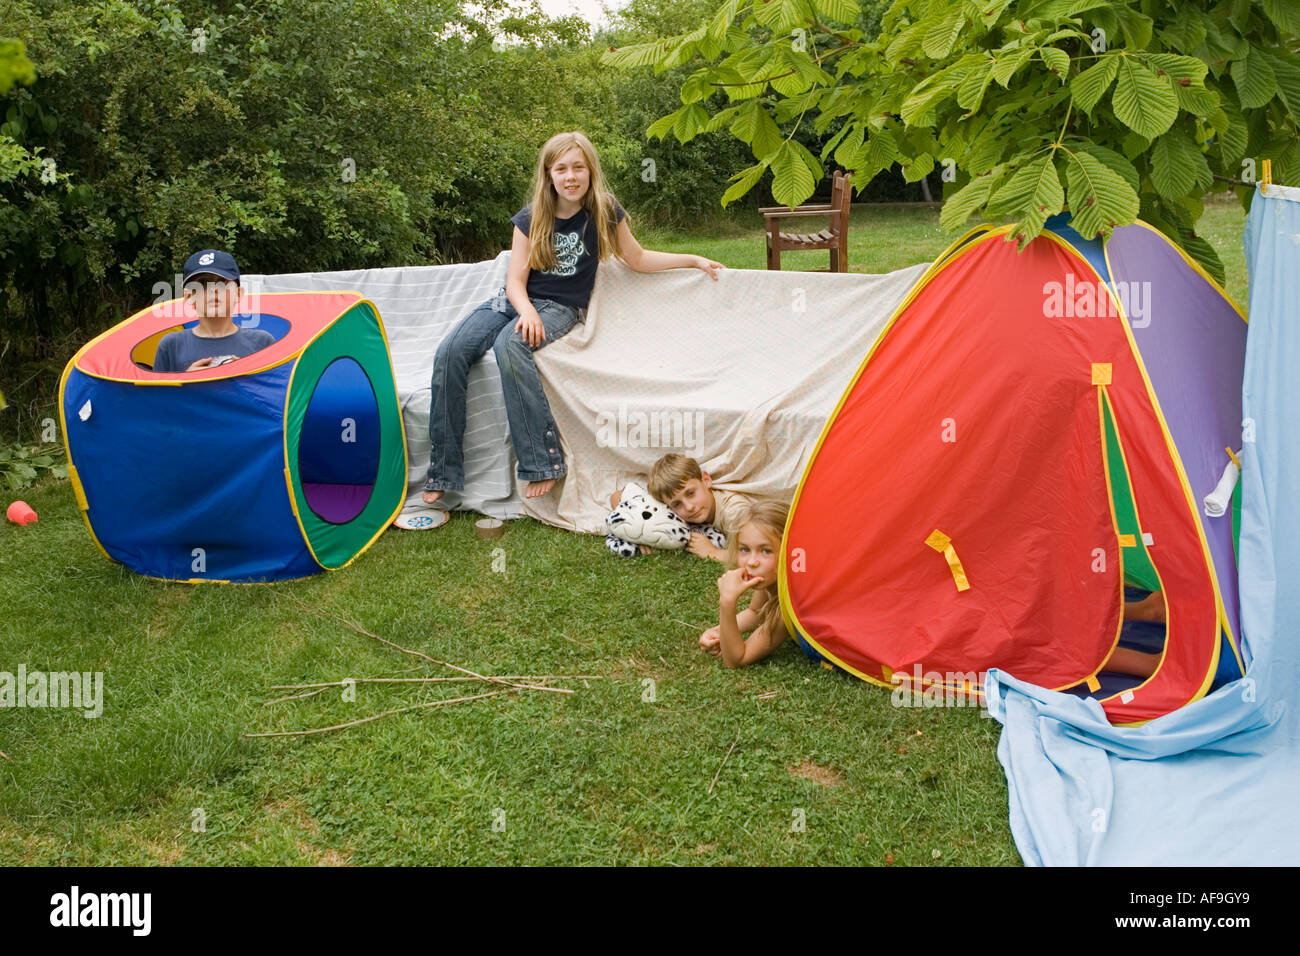 Children aged 9 12 playing outside in pretend houses made from blankets and tents in garden Cotswolds UK & Children aged 9 12 playing outside in pretend houses made from ...